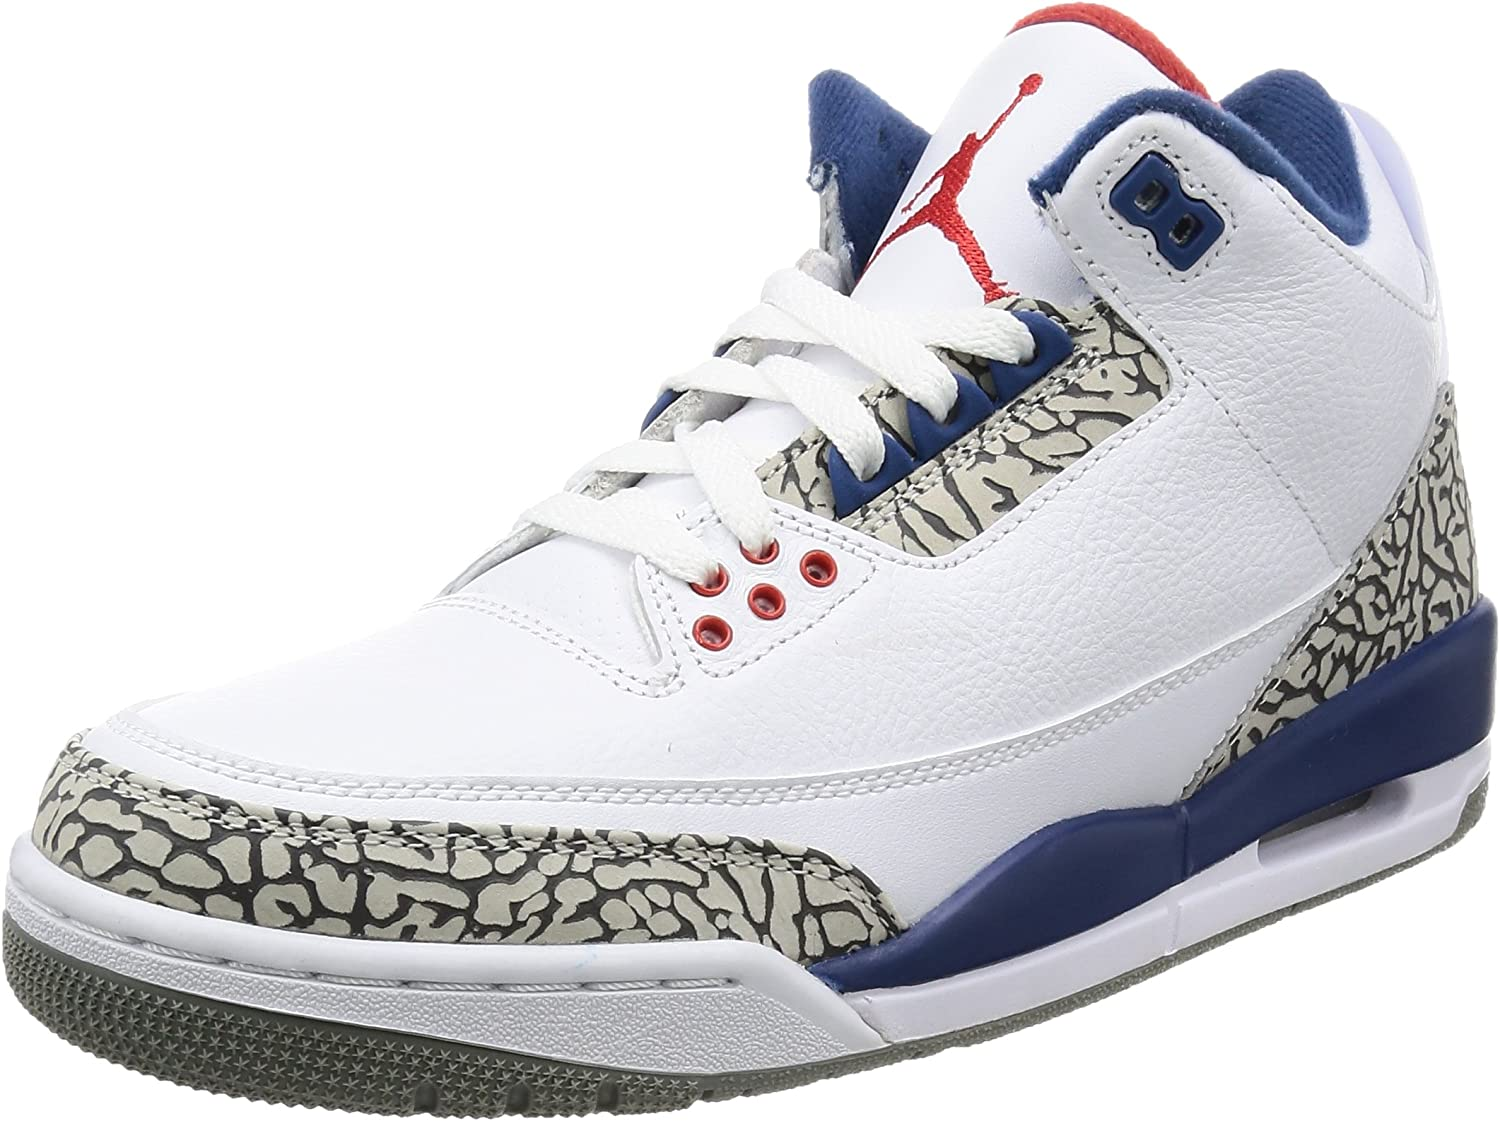 Jordans 3 Amazon.com | Nike Men's Air Jordan 3 Retro OG Basketball Shoes ...